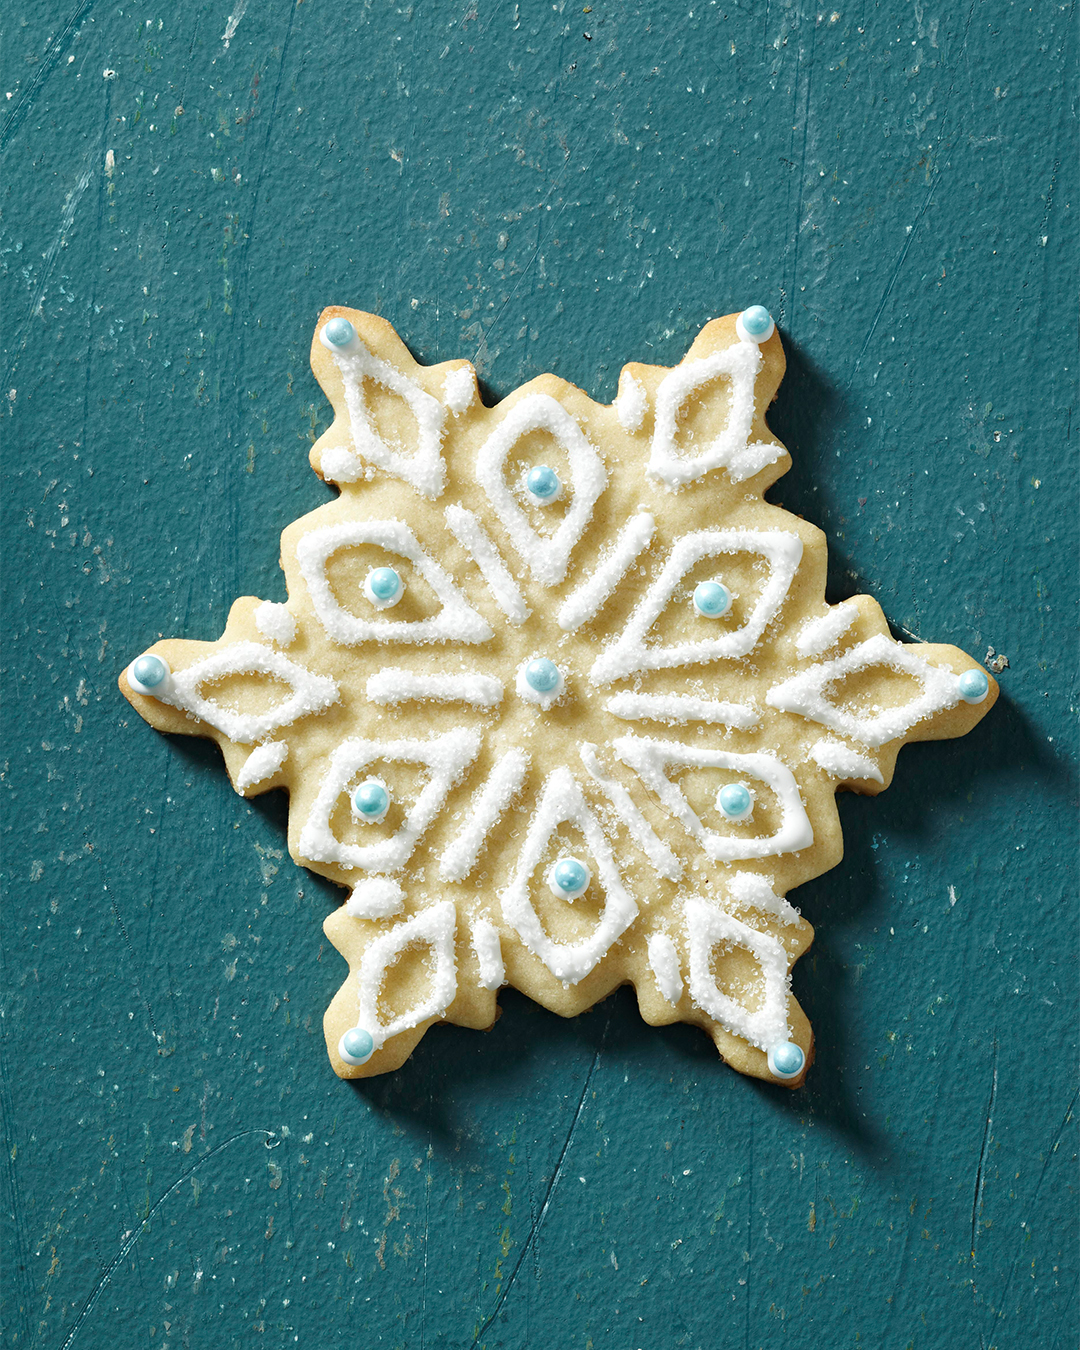 Traditional Snowflake Sugar Cookie with blue beads